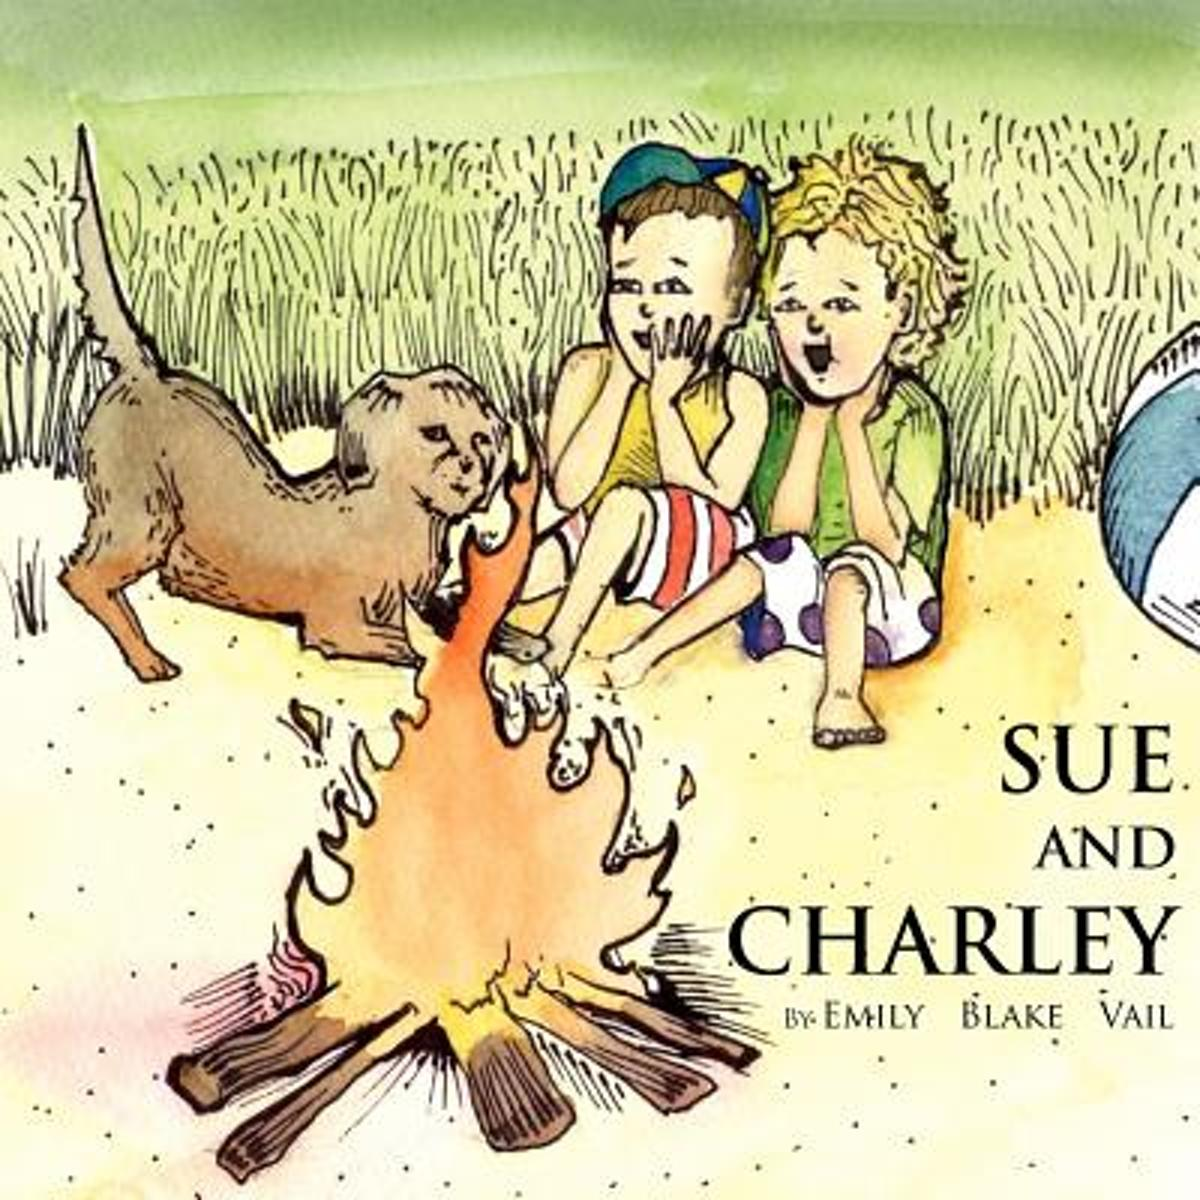 Sue and Charley